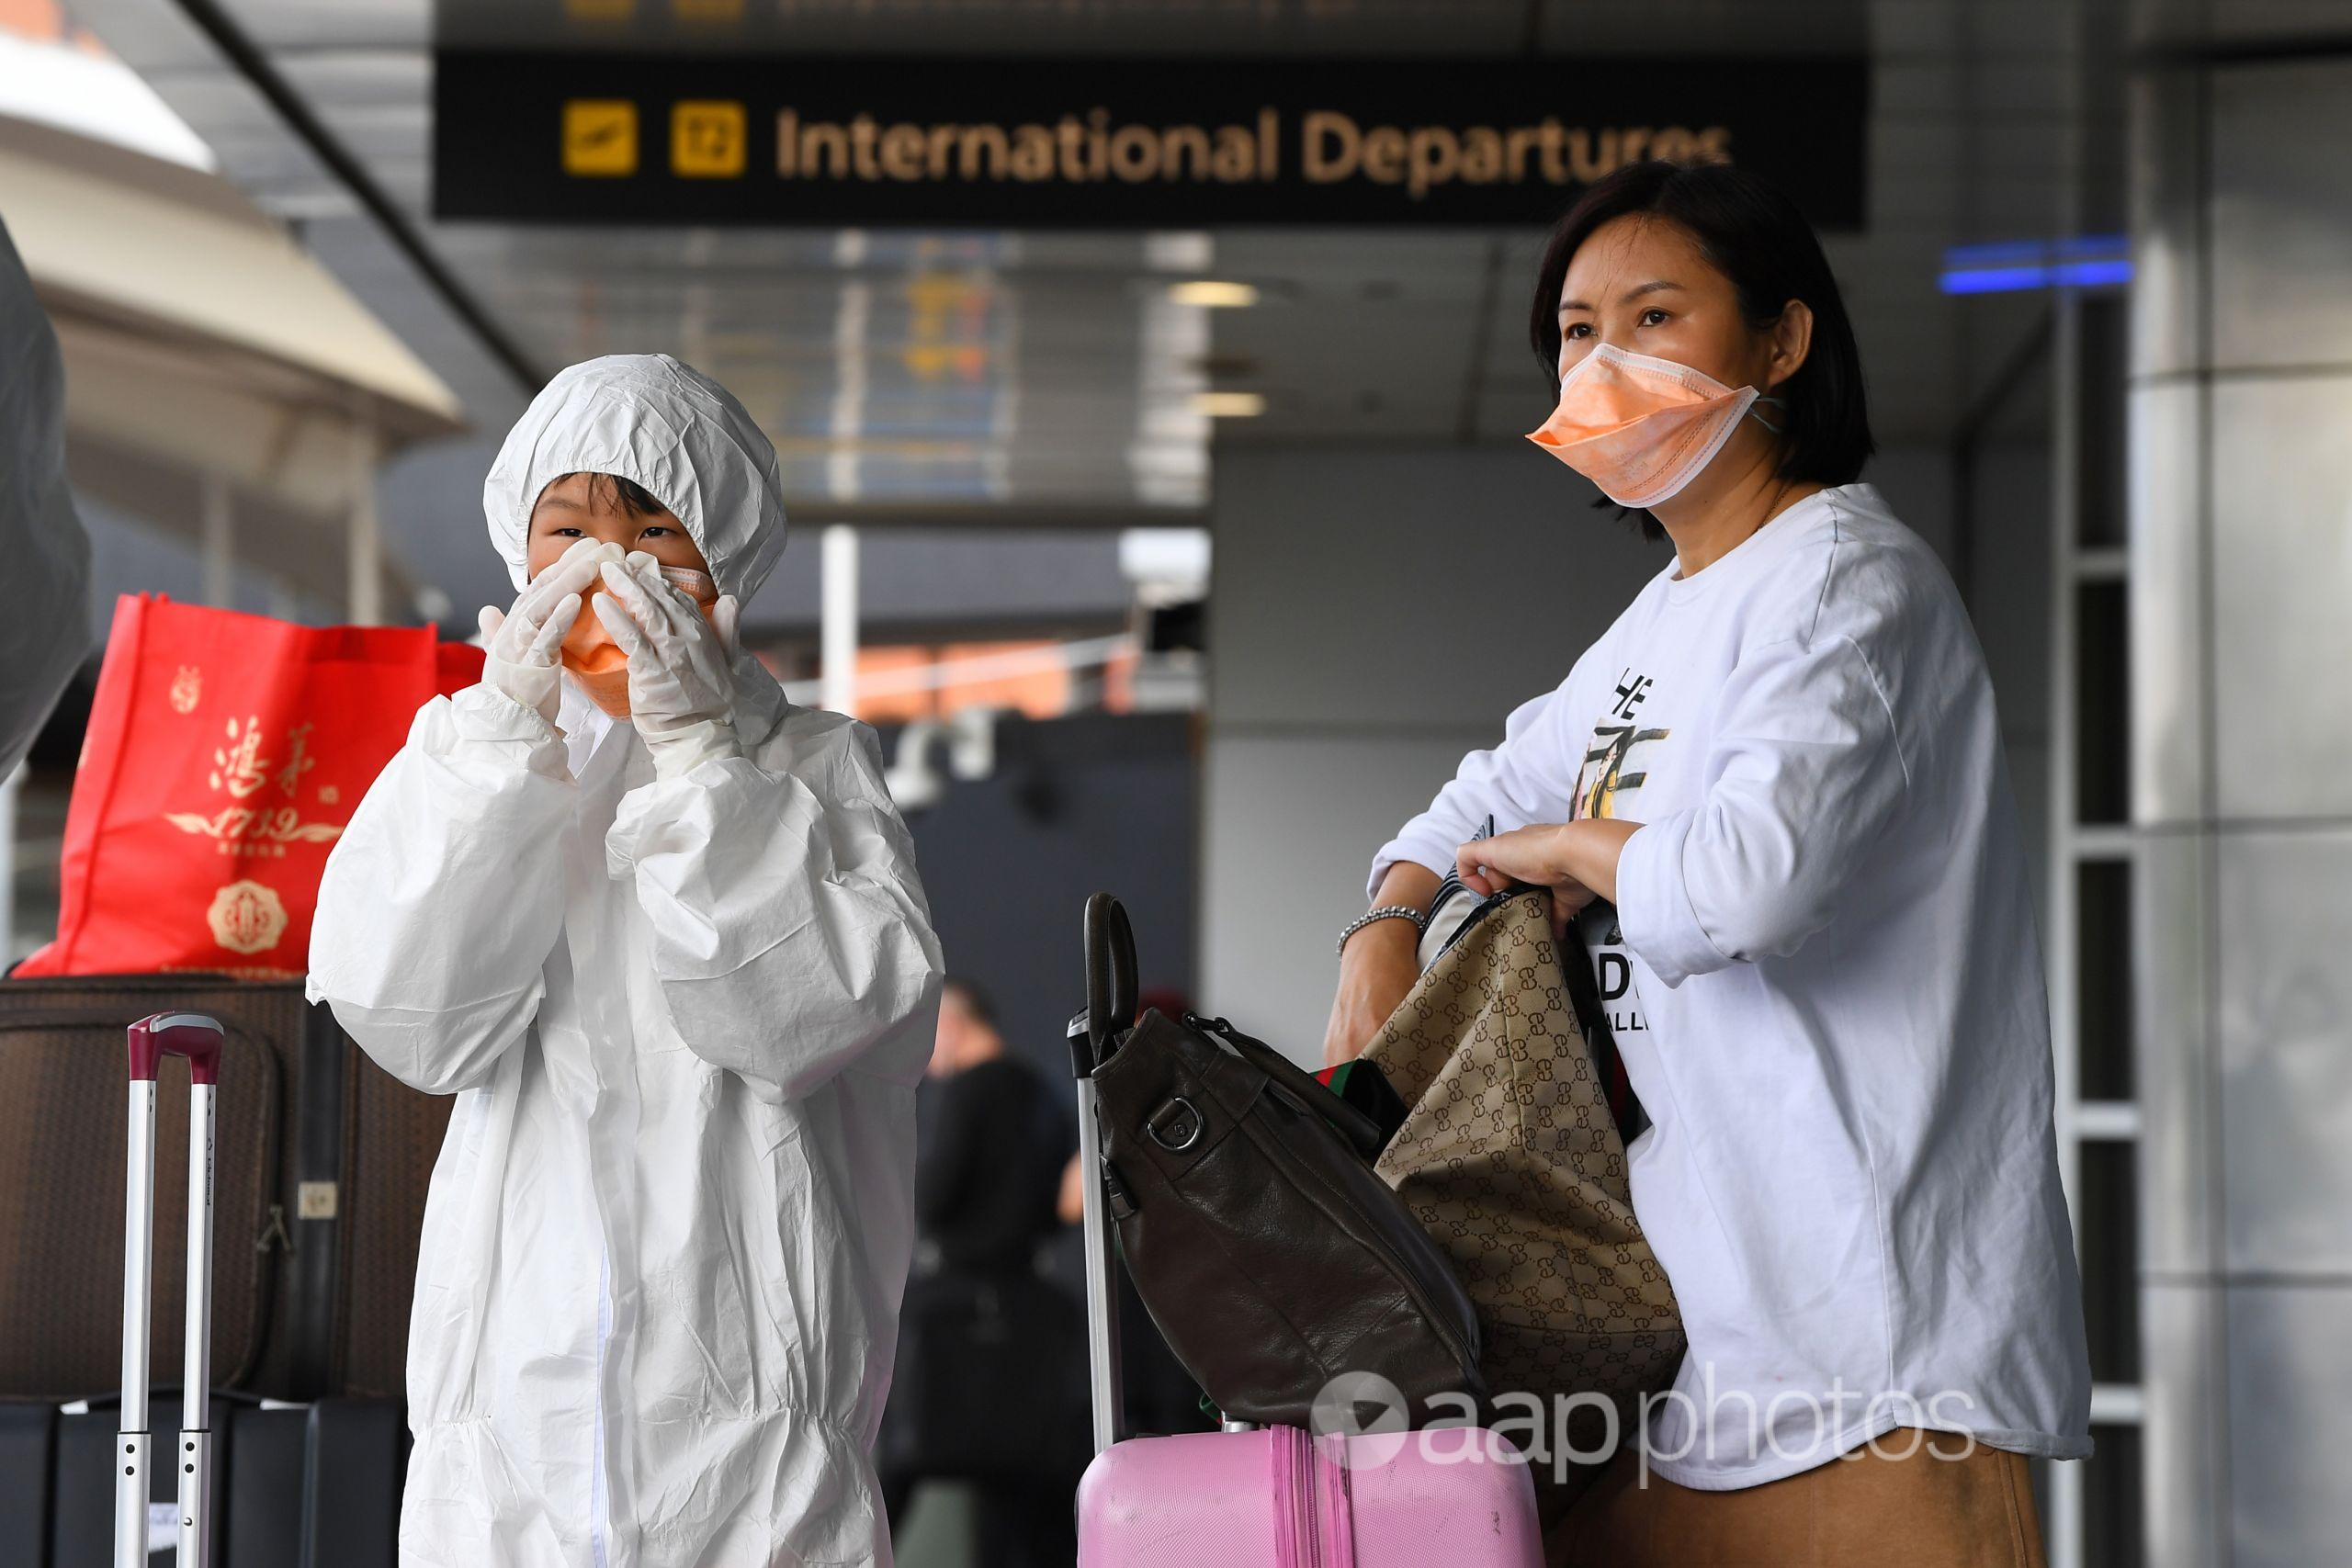 Two people wear masks to protect themselves against coronavirus.